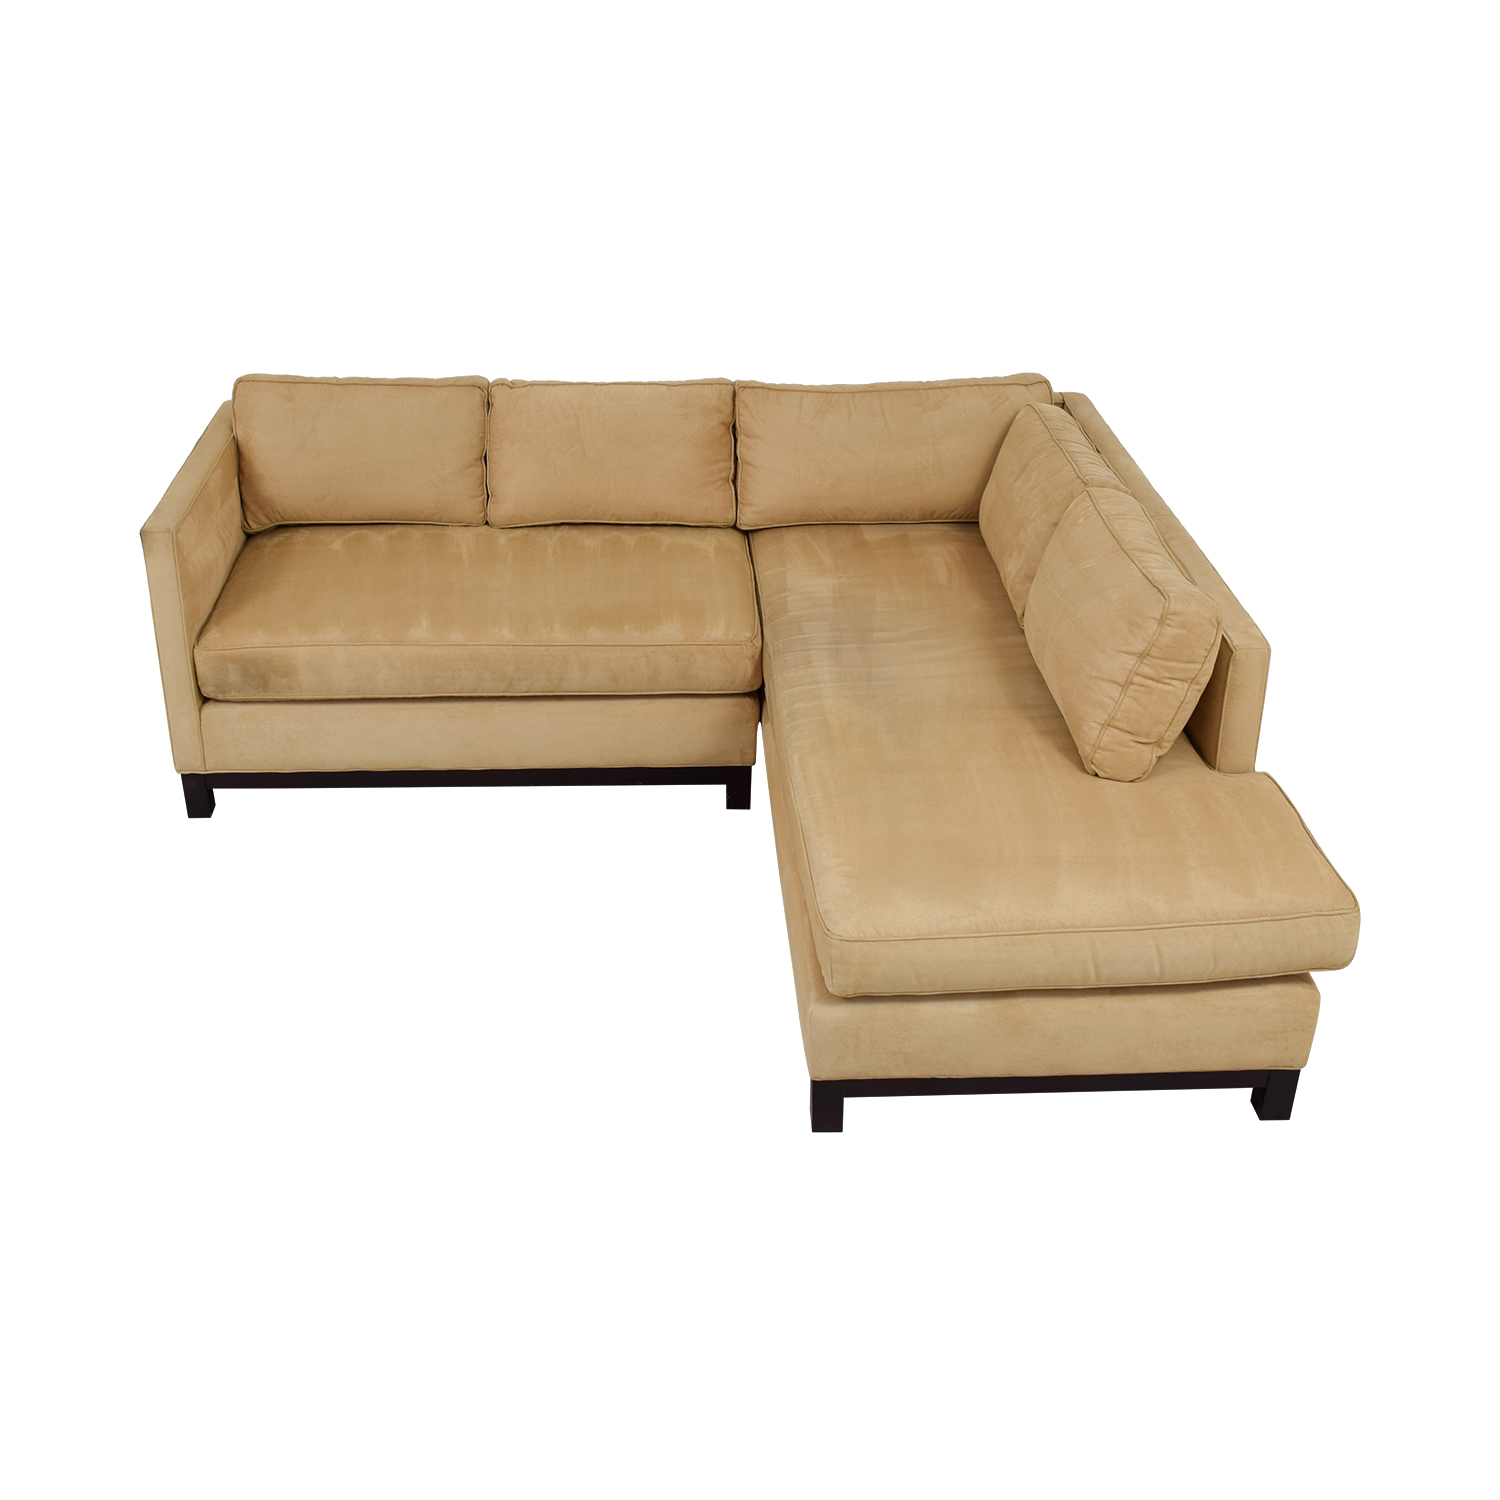 Mitchell Gold + Bob Williams Mitchell Gold + Bob Williams Clifton Honey Suede Sectional second hand